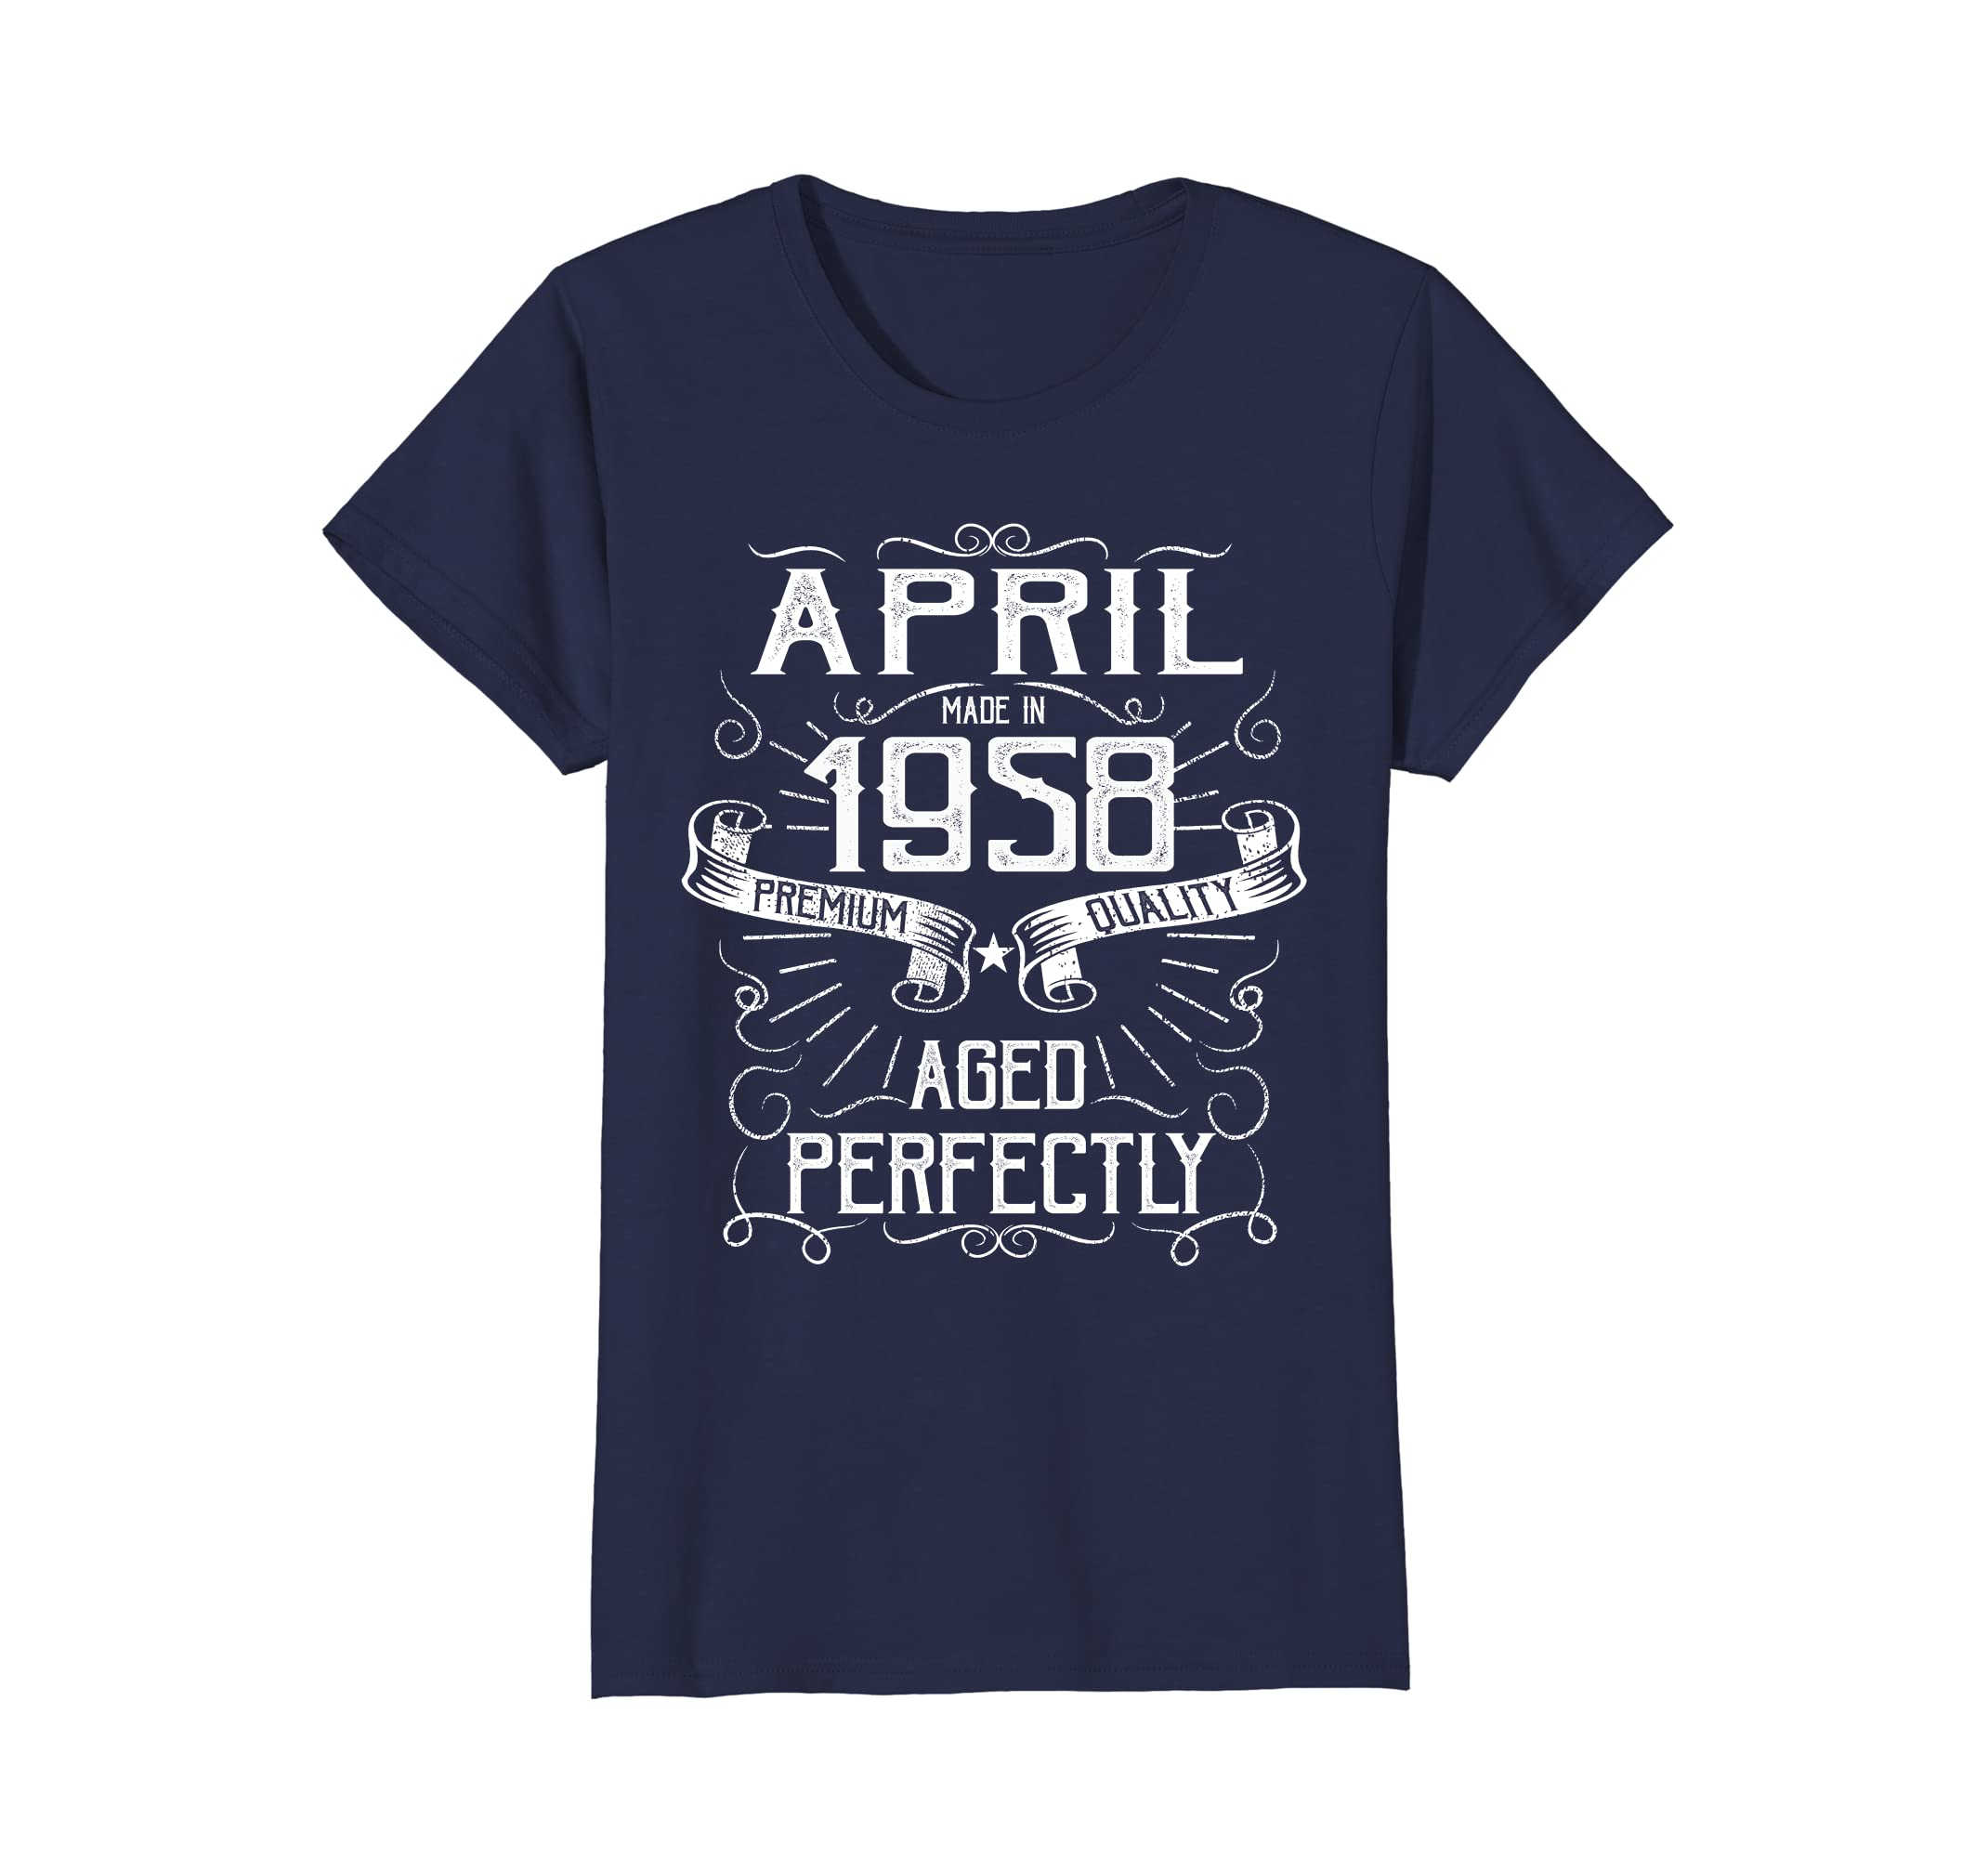 f0088d8cc Amazon.com: Vintage April Made in 1958 T-Shirt 60th Birthday Gift Tee:  Clothing